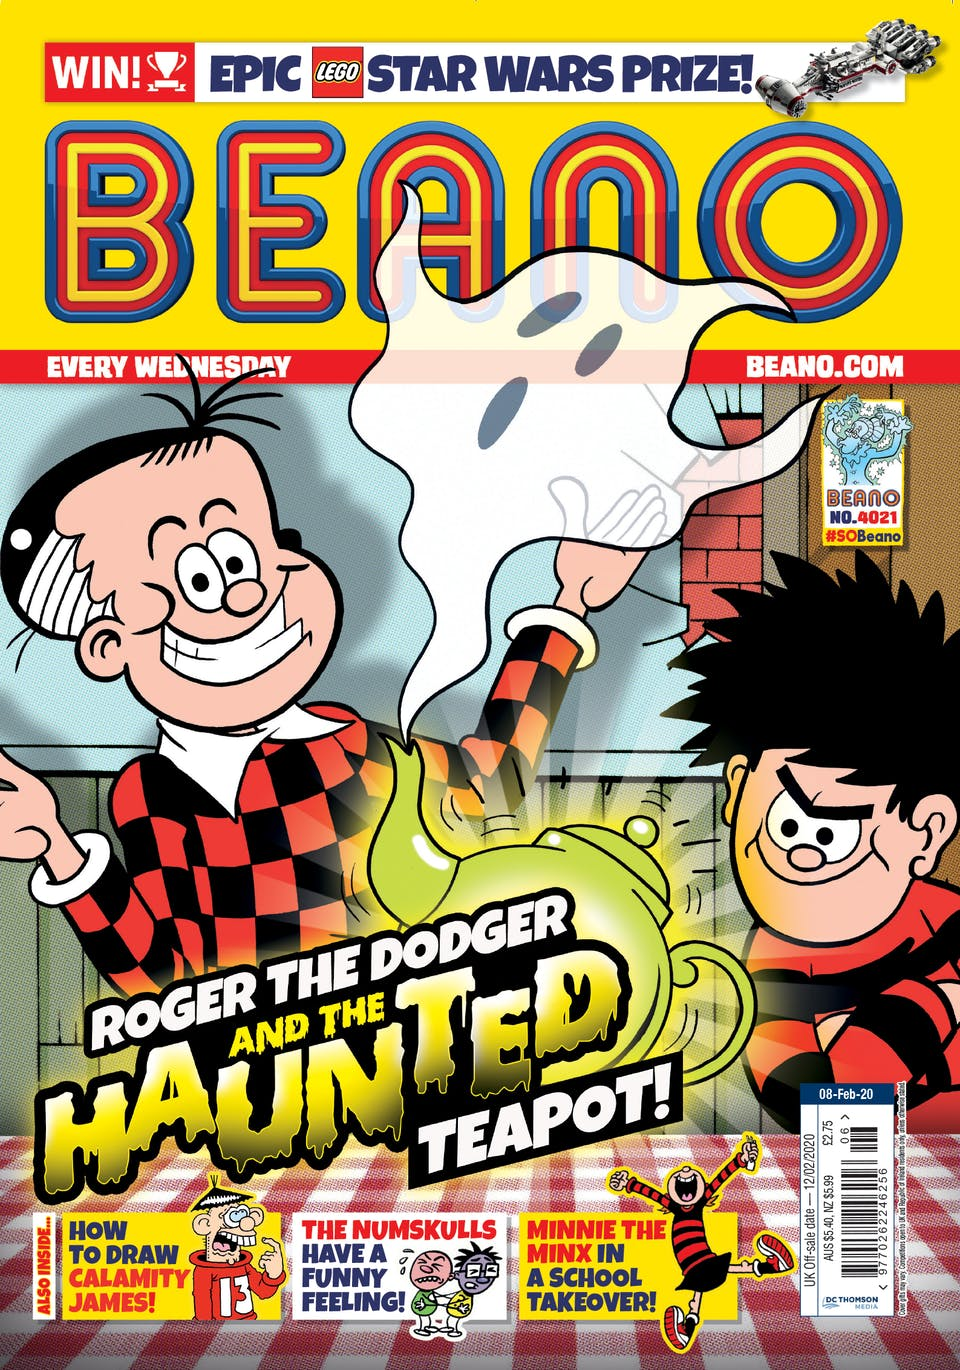 Inside Beano 4021 - Rodger the Dodger and the haunted teapot